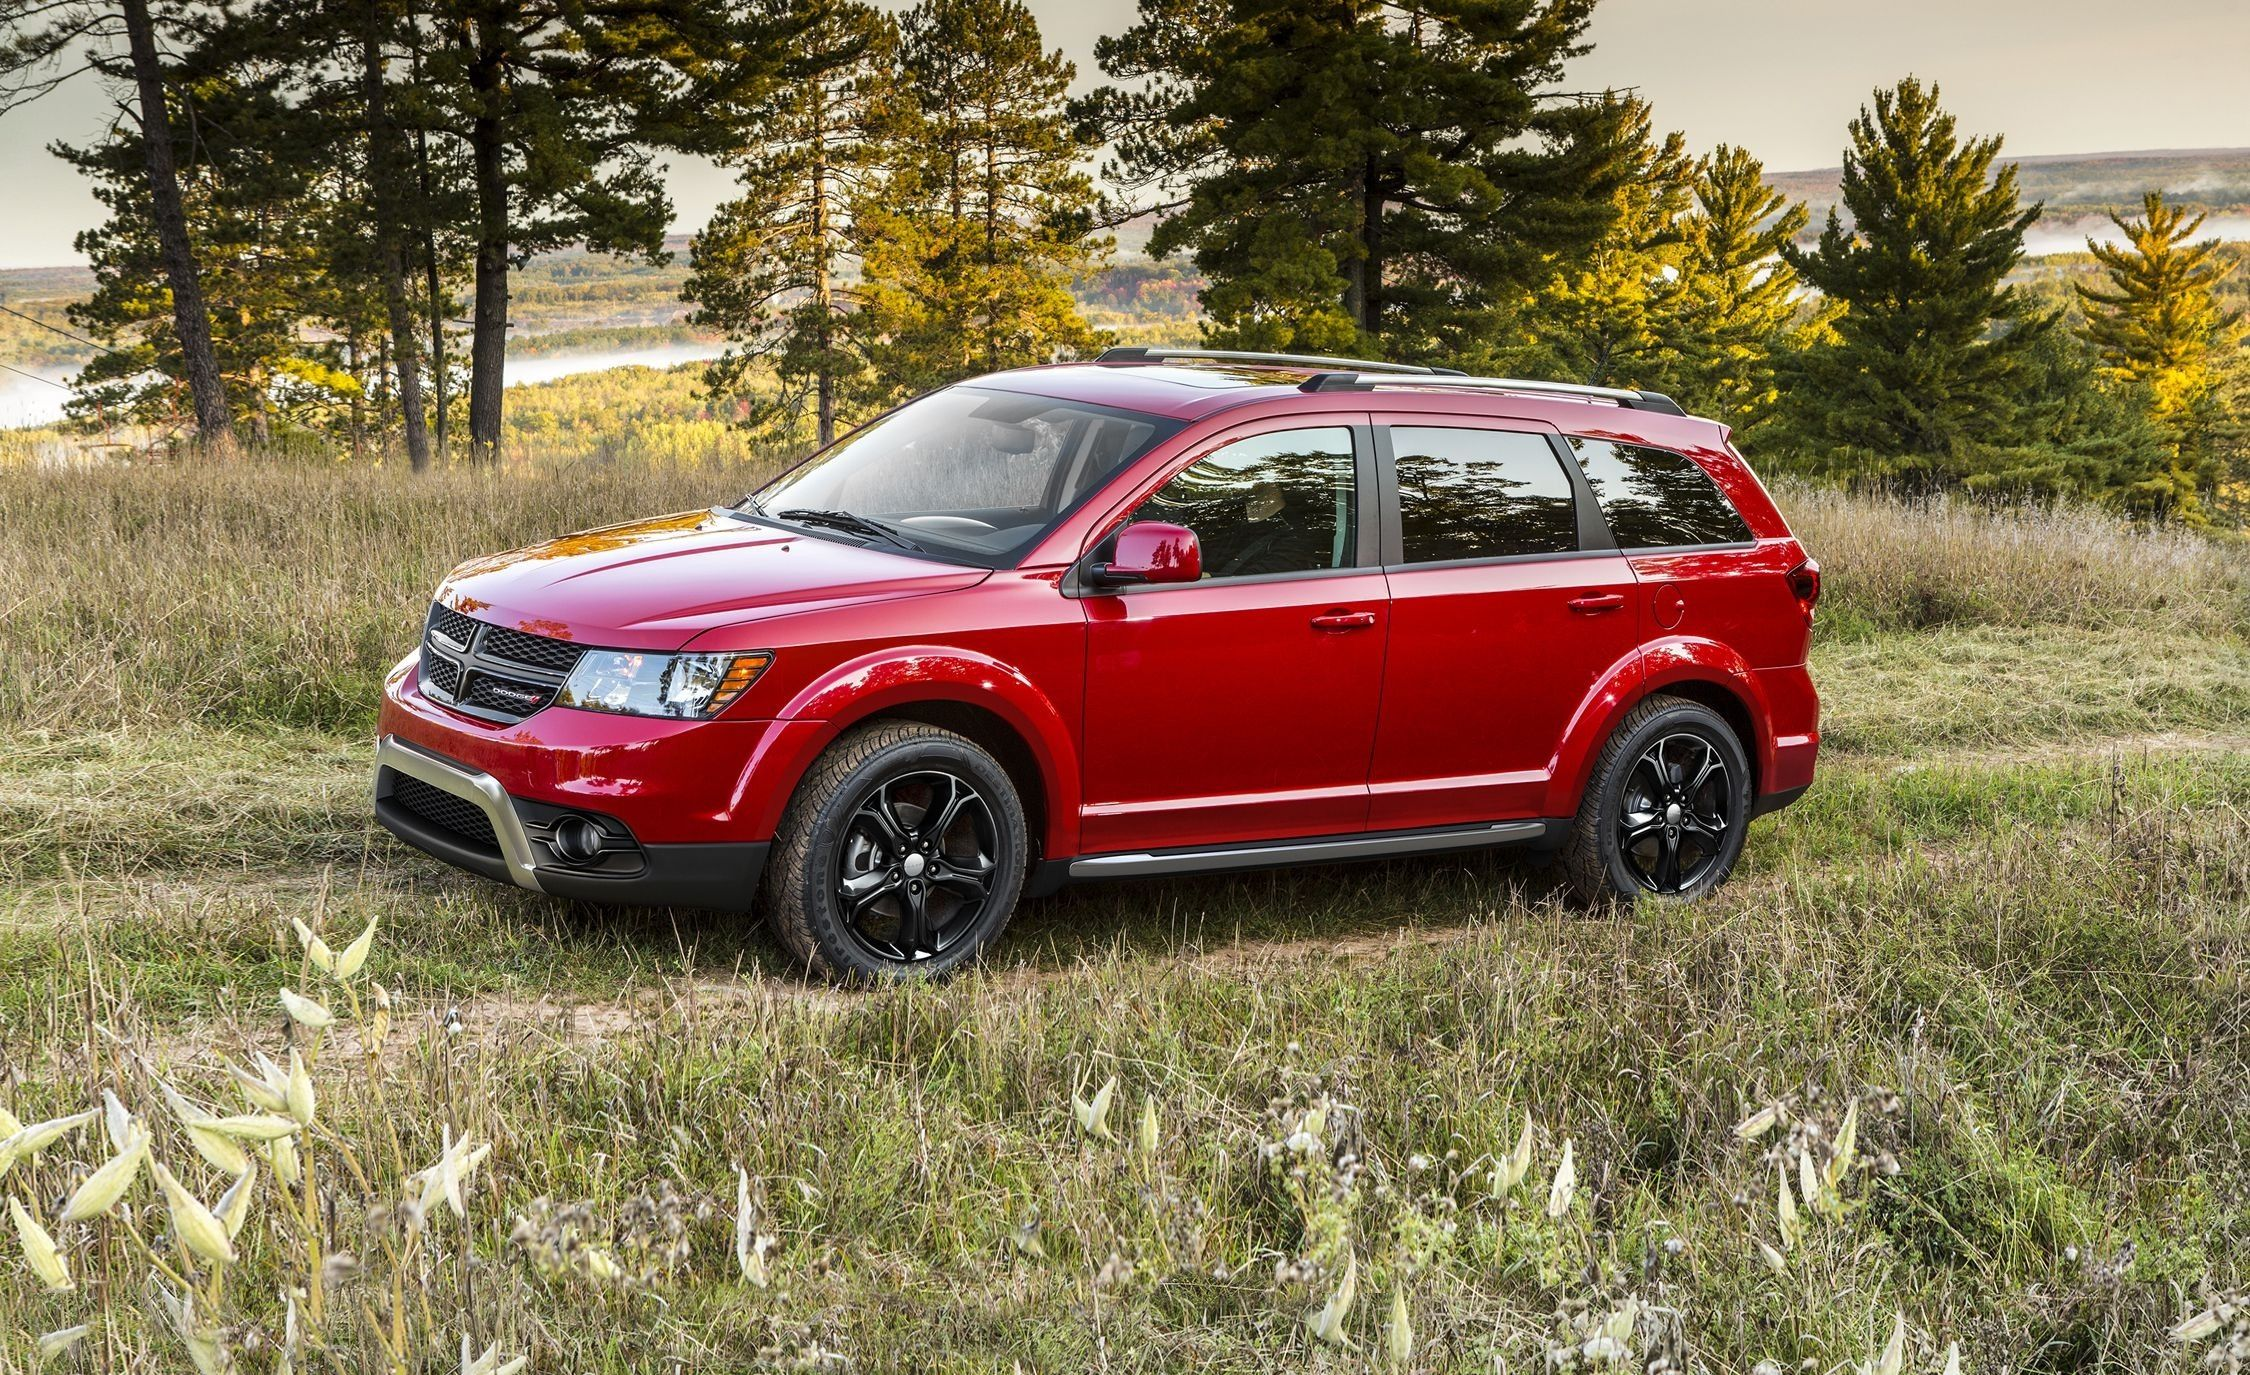 Dodge Journey Mpg >> 2019 Dodge Journey Mpg New Review Car Review 2018 All Car